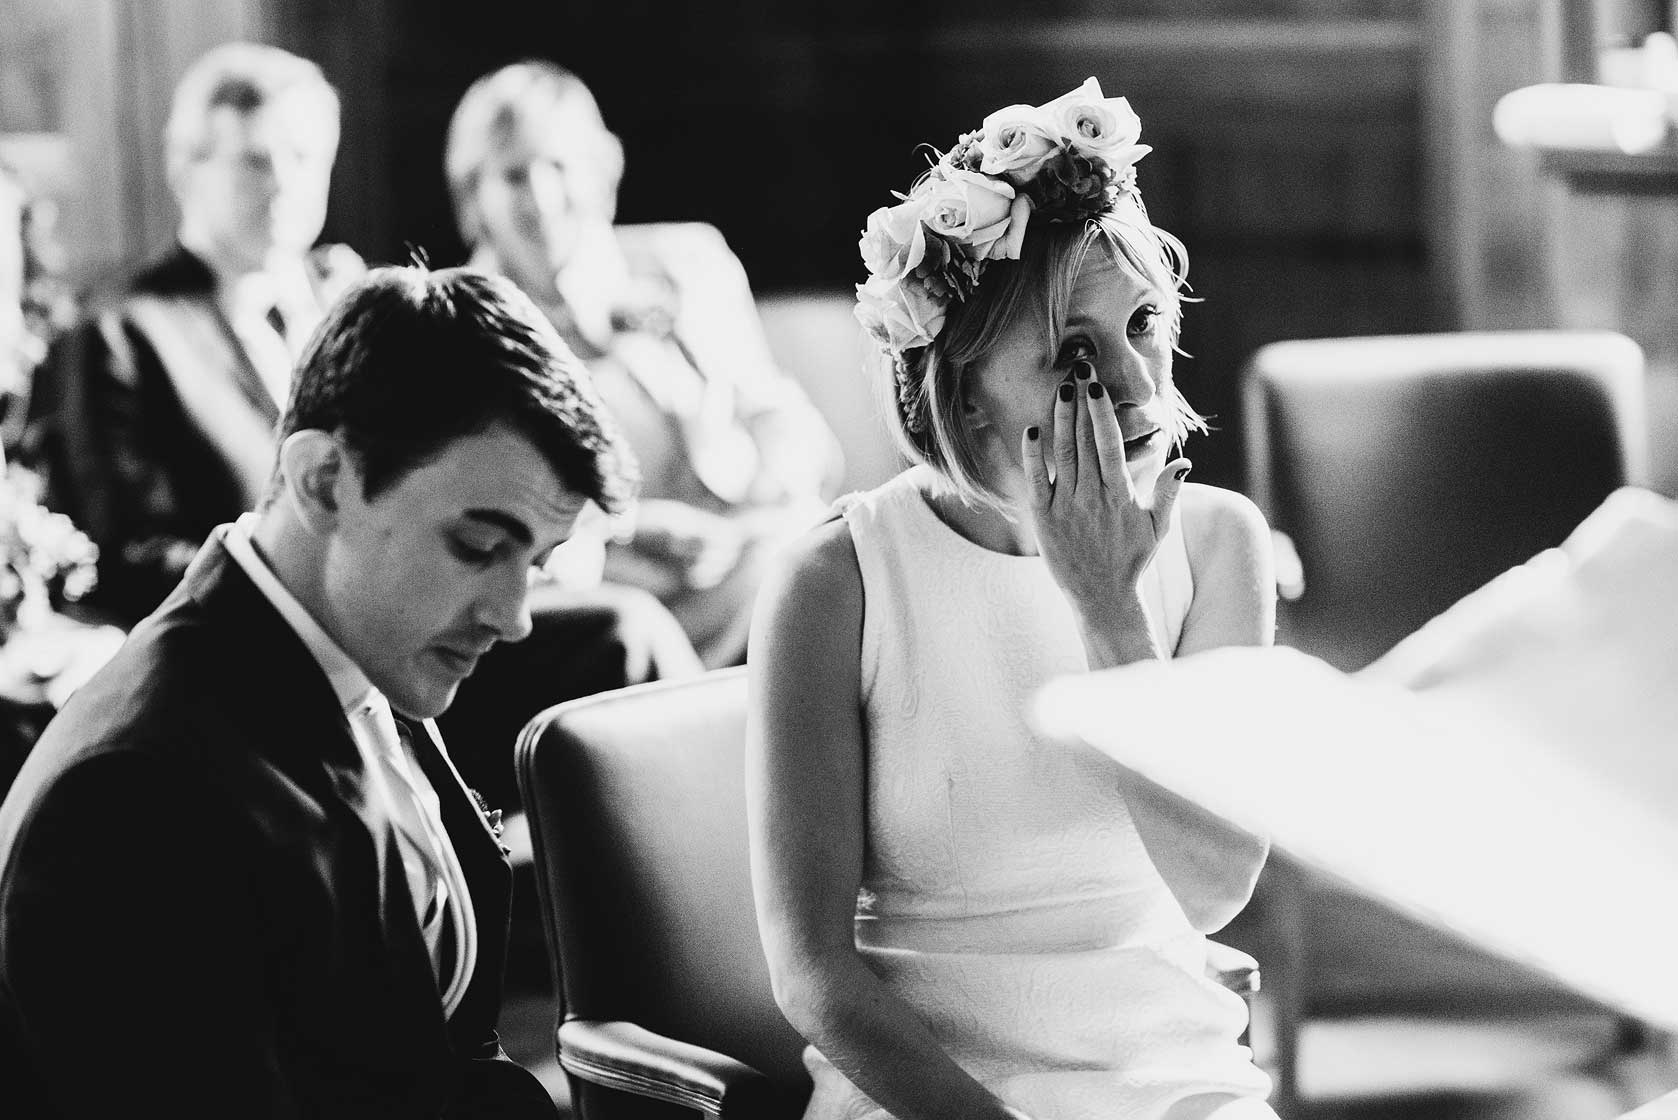 Reportage Wedding Photography at The Round Chapel